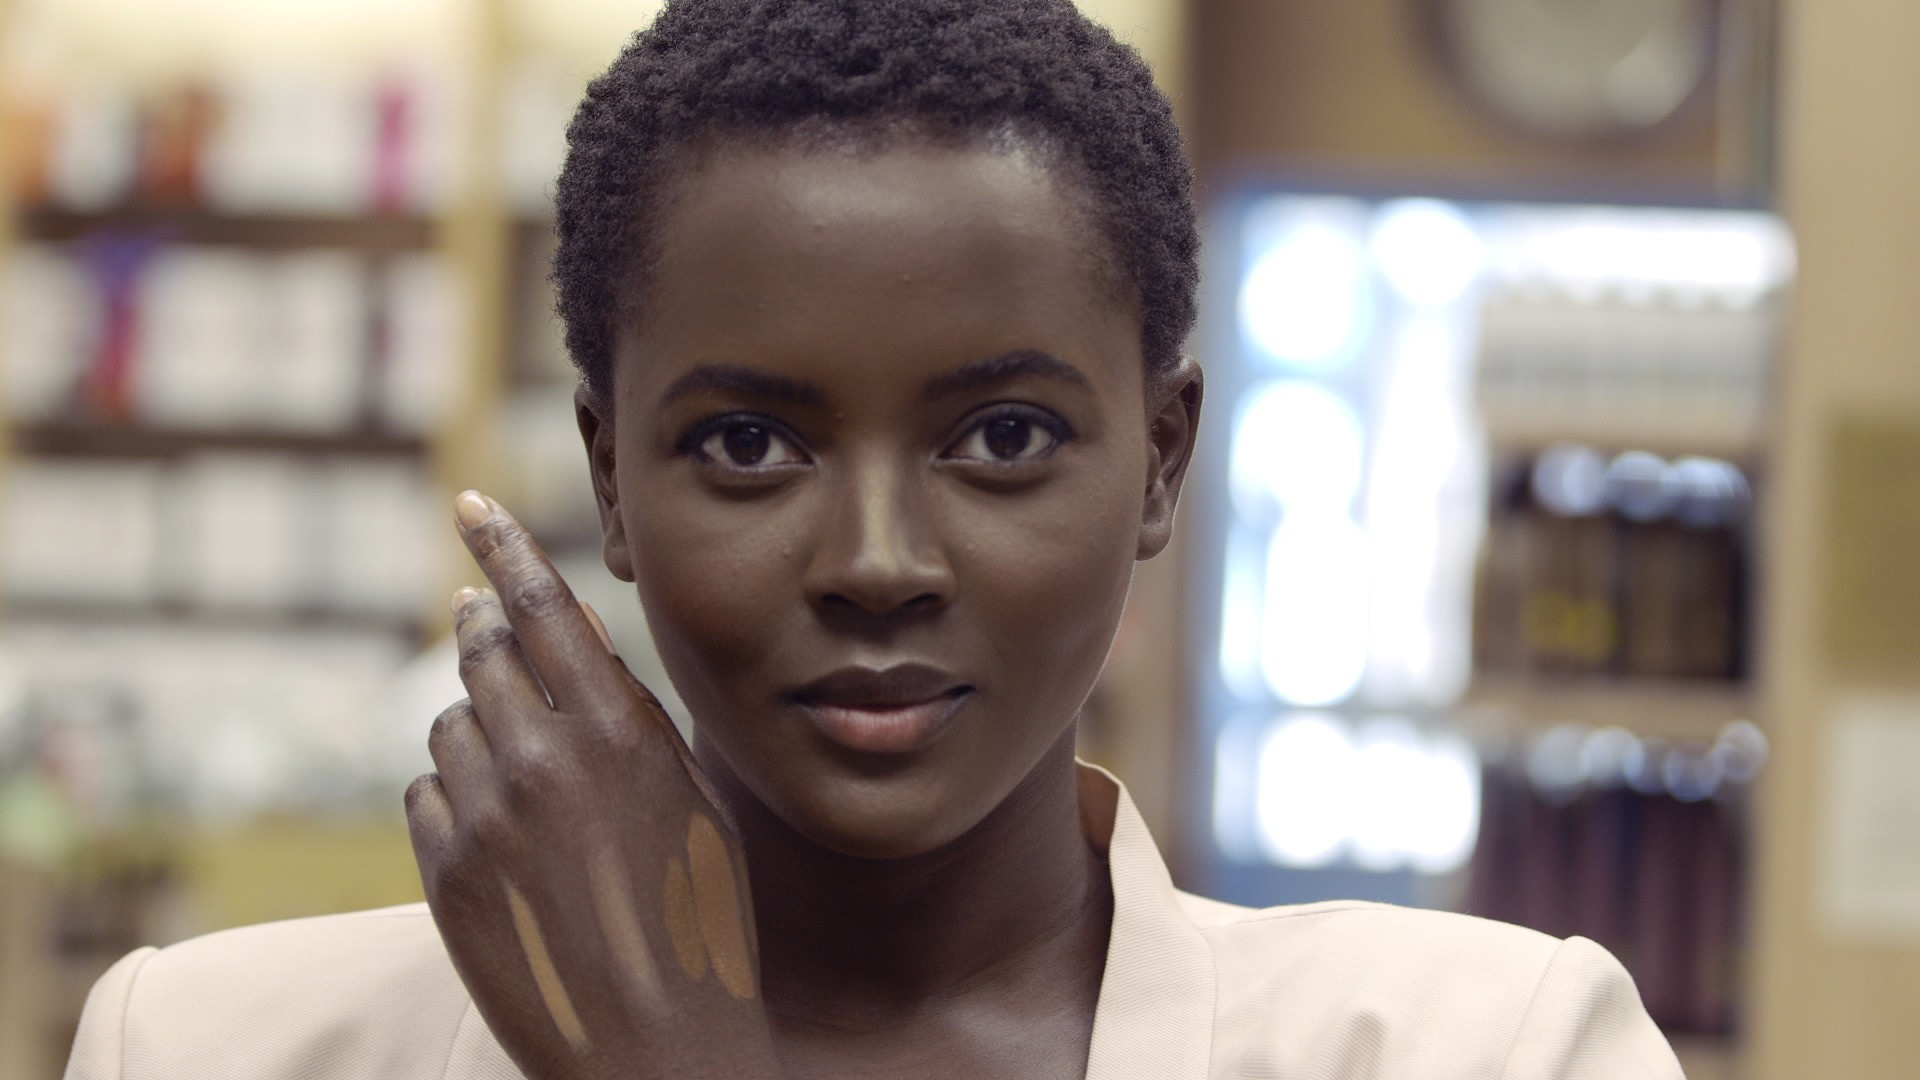 i-D meets special: philomena and iman on black beauty